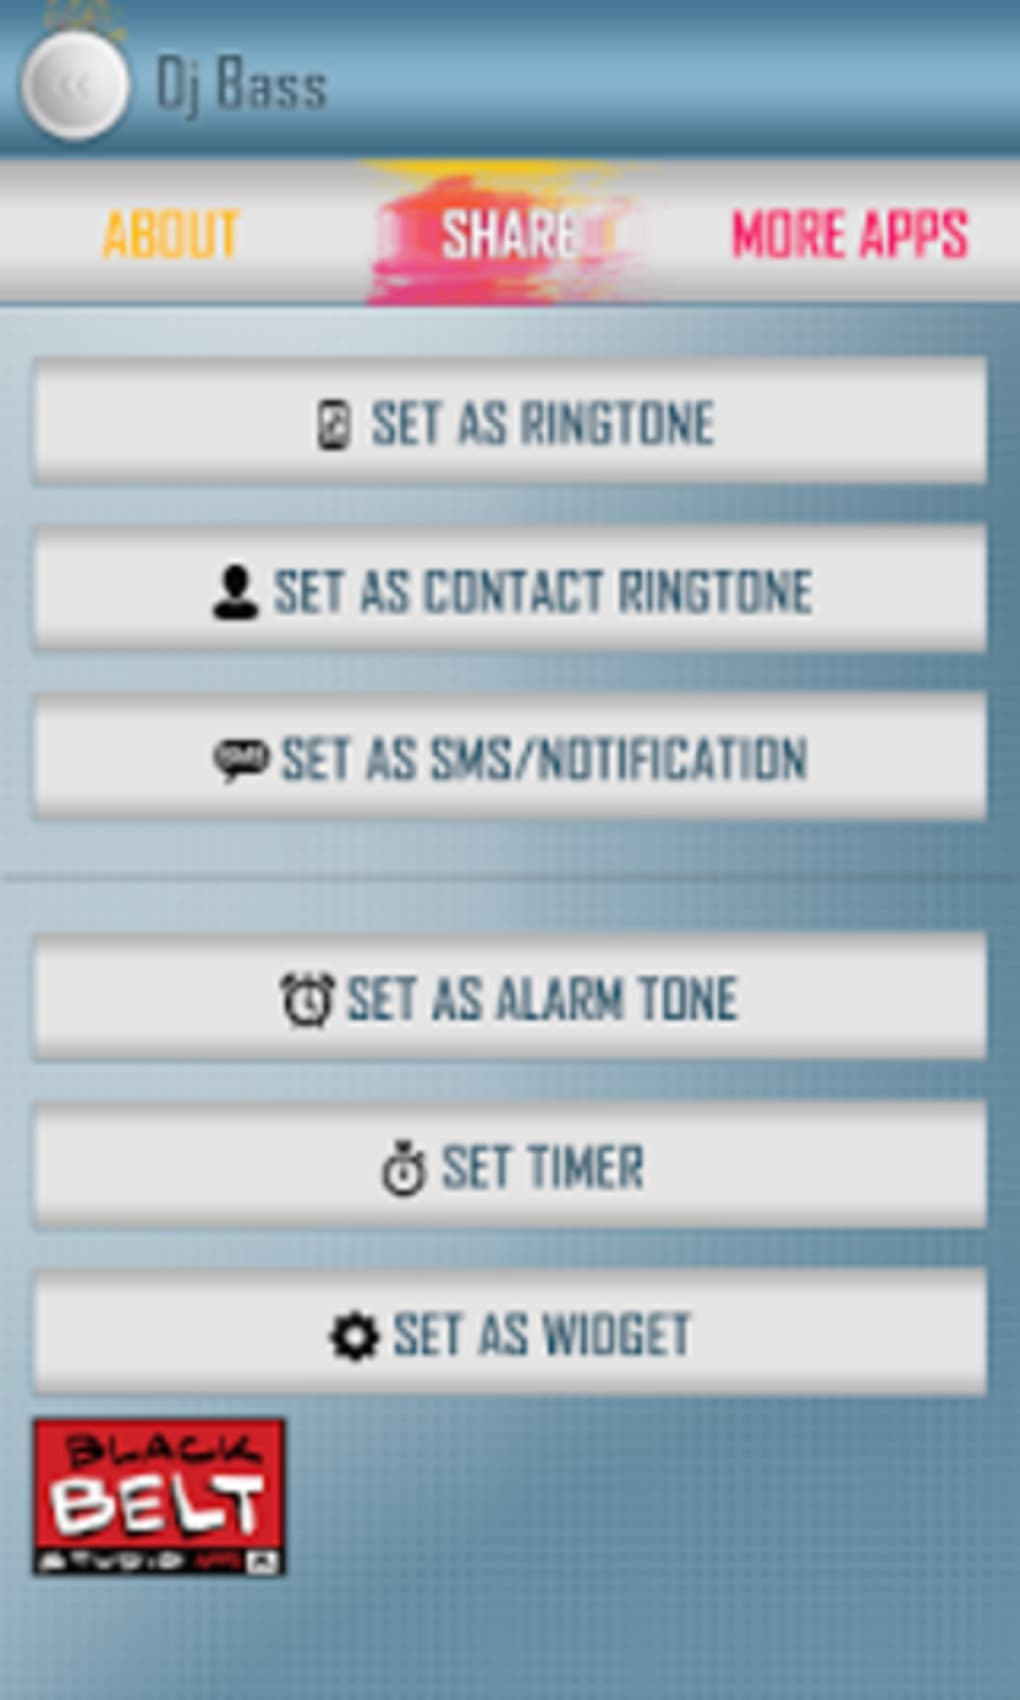 DJ Sound Effects and Ringtones for Android - Download